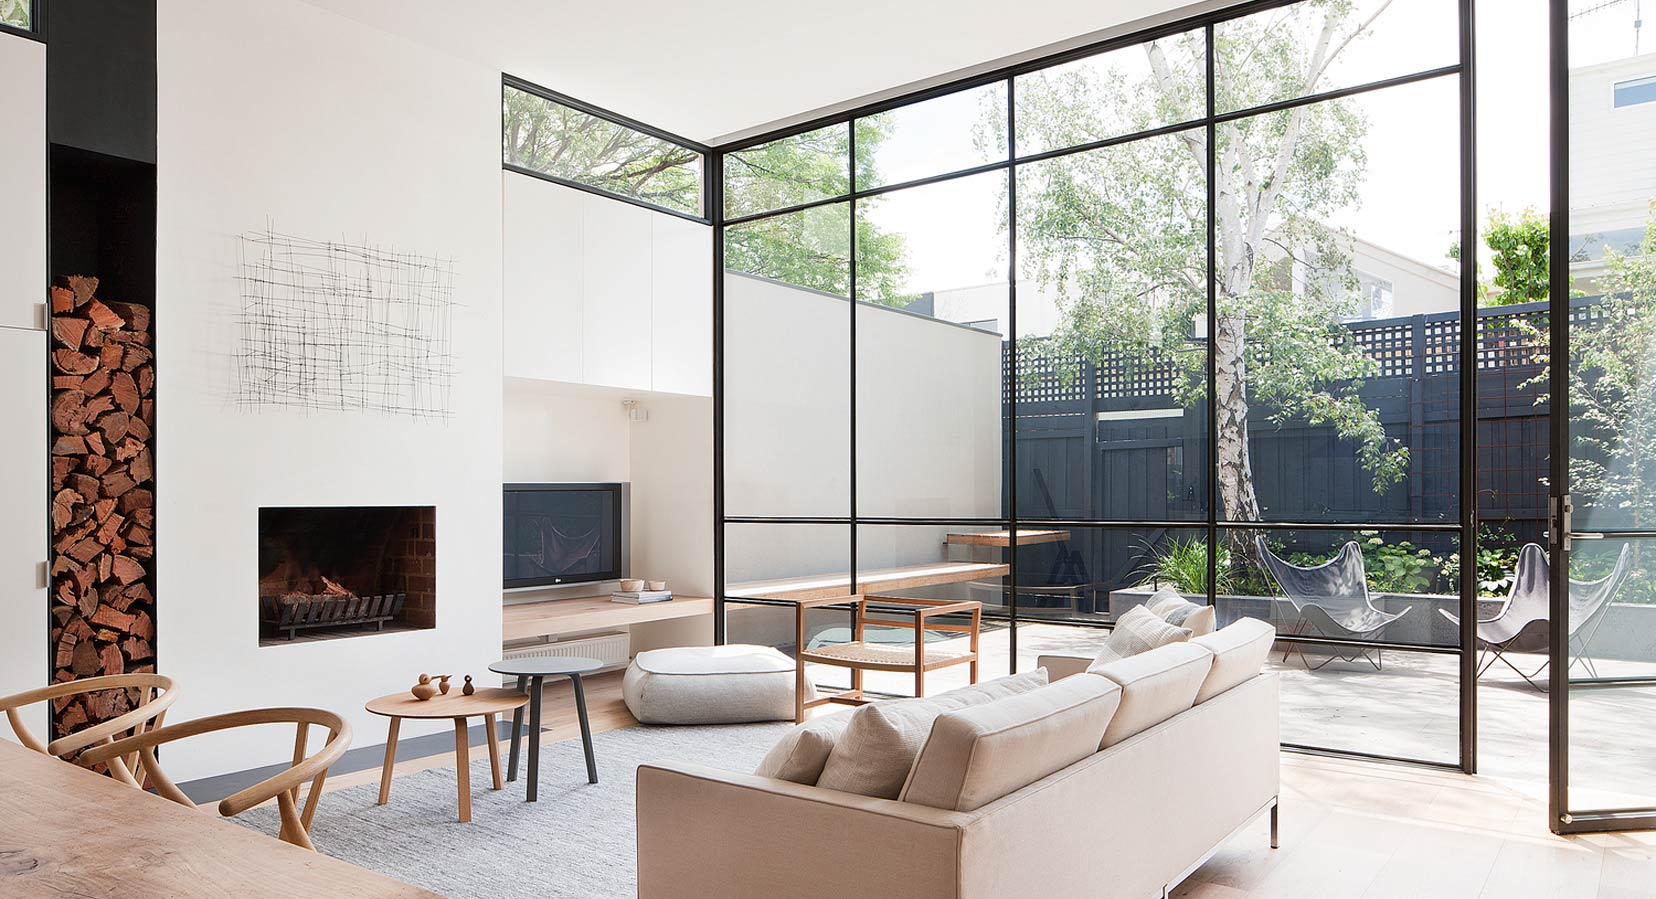 Take A Look Inside The Incredibly Elegant Armadale House by Robson Rak Architects & Made by Cohen